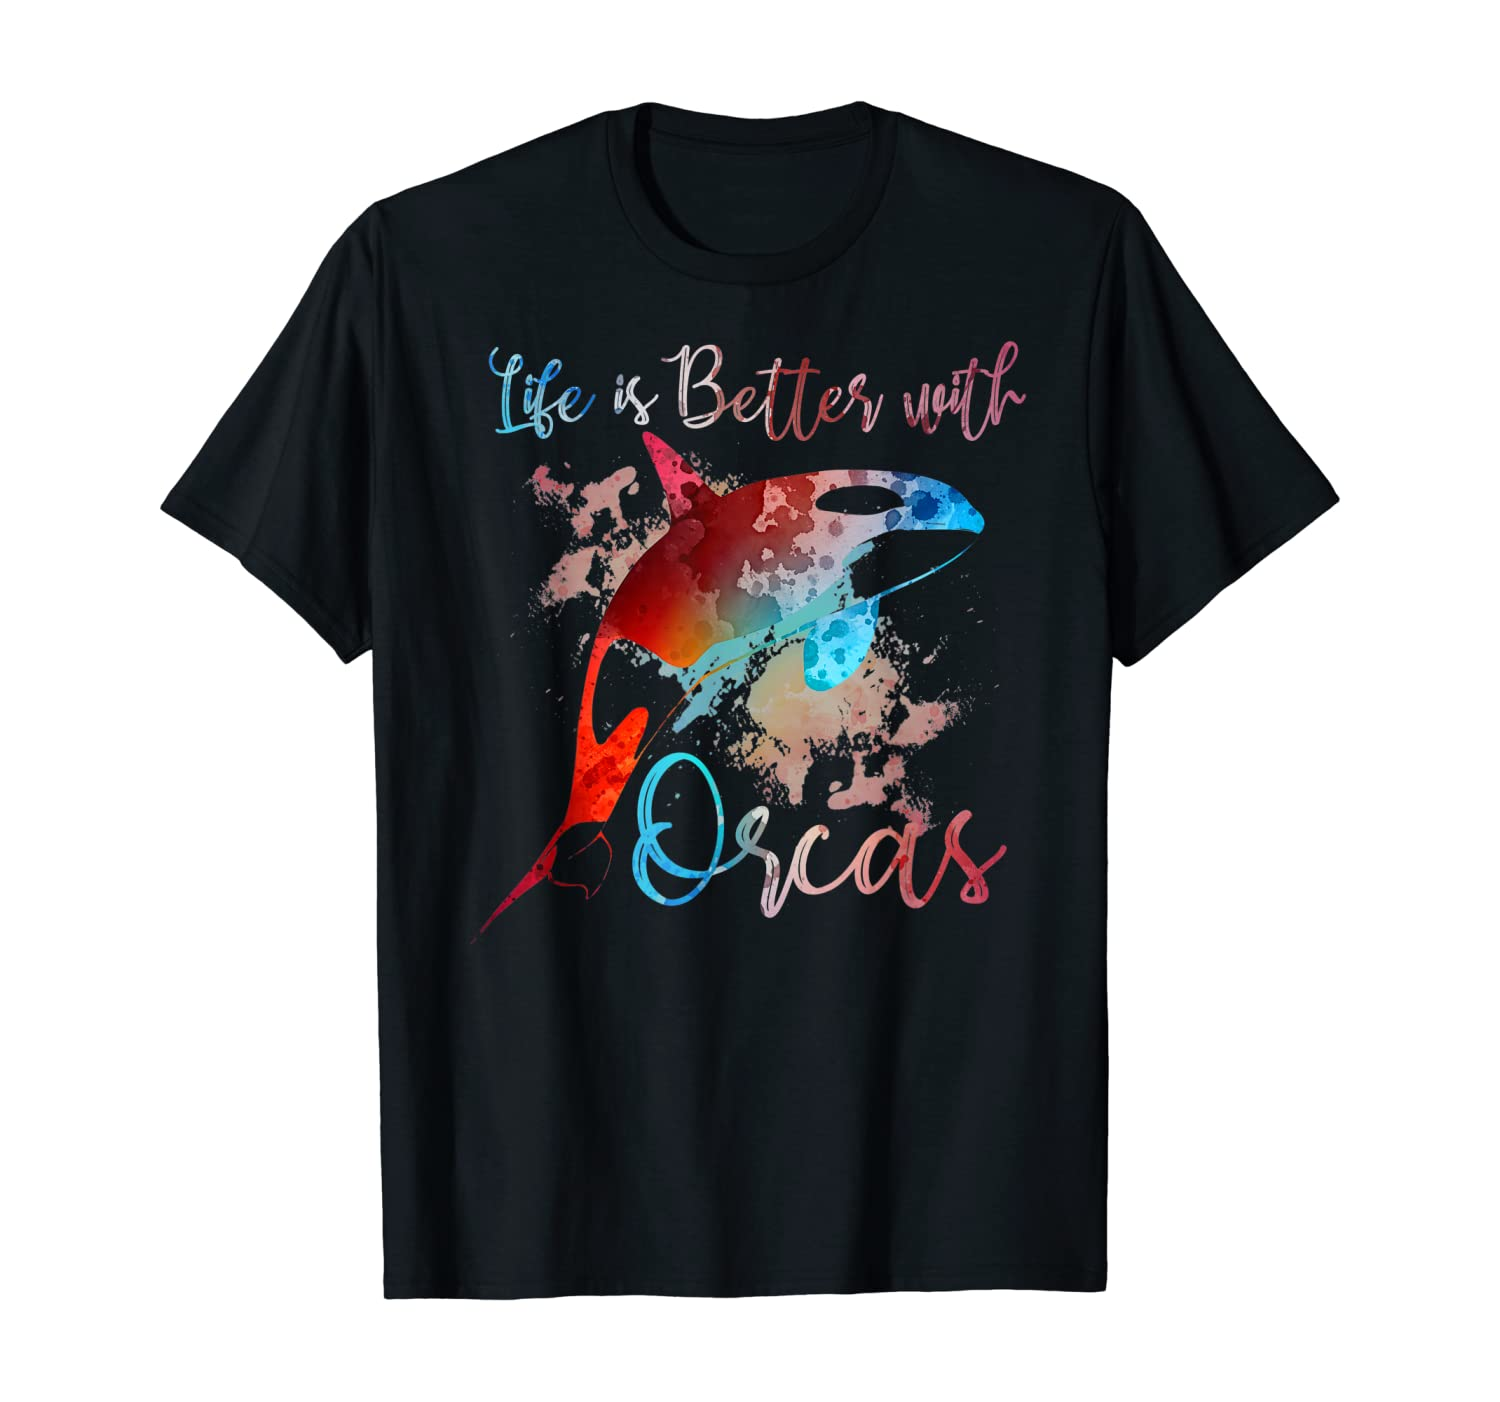 LIFE IS BETTER WITH ORCAS Killer Whale Watercolor Women Girl T-Shirt